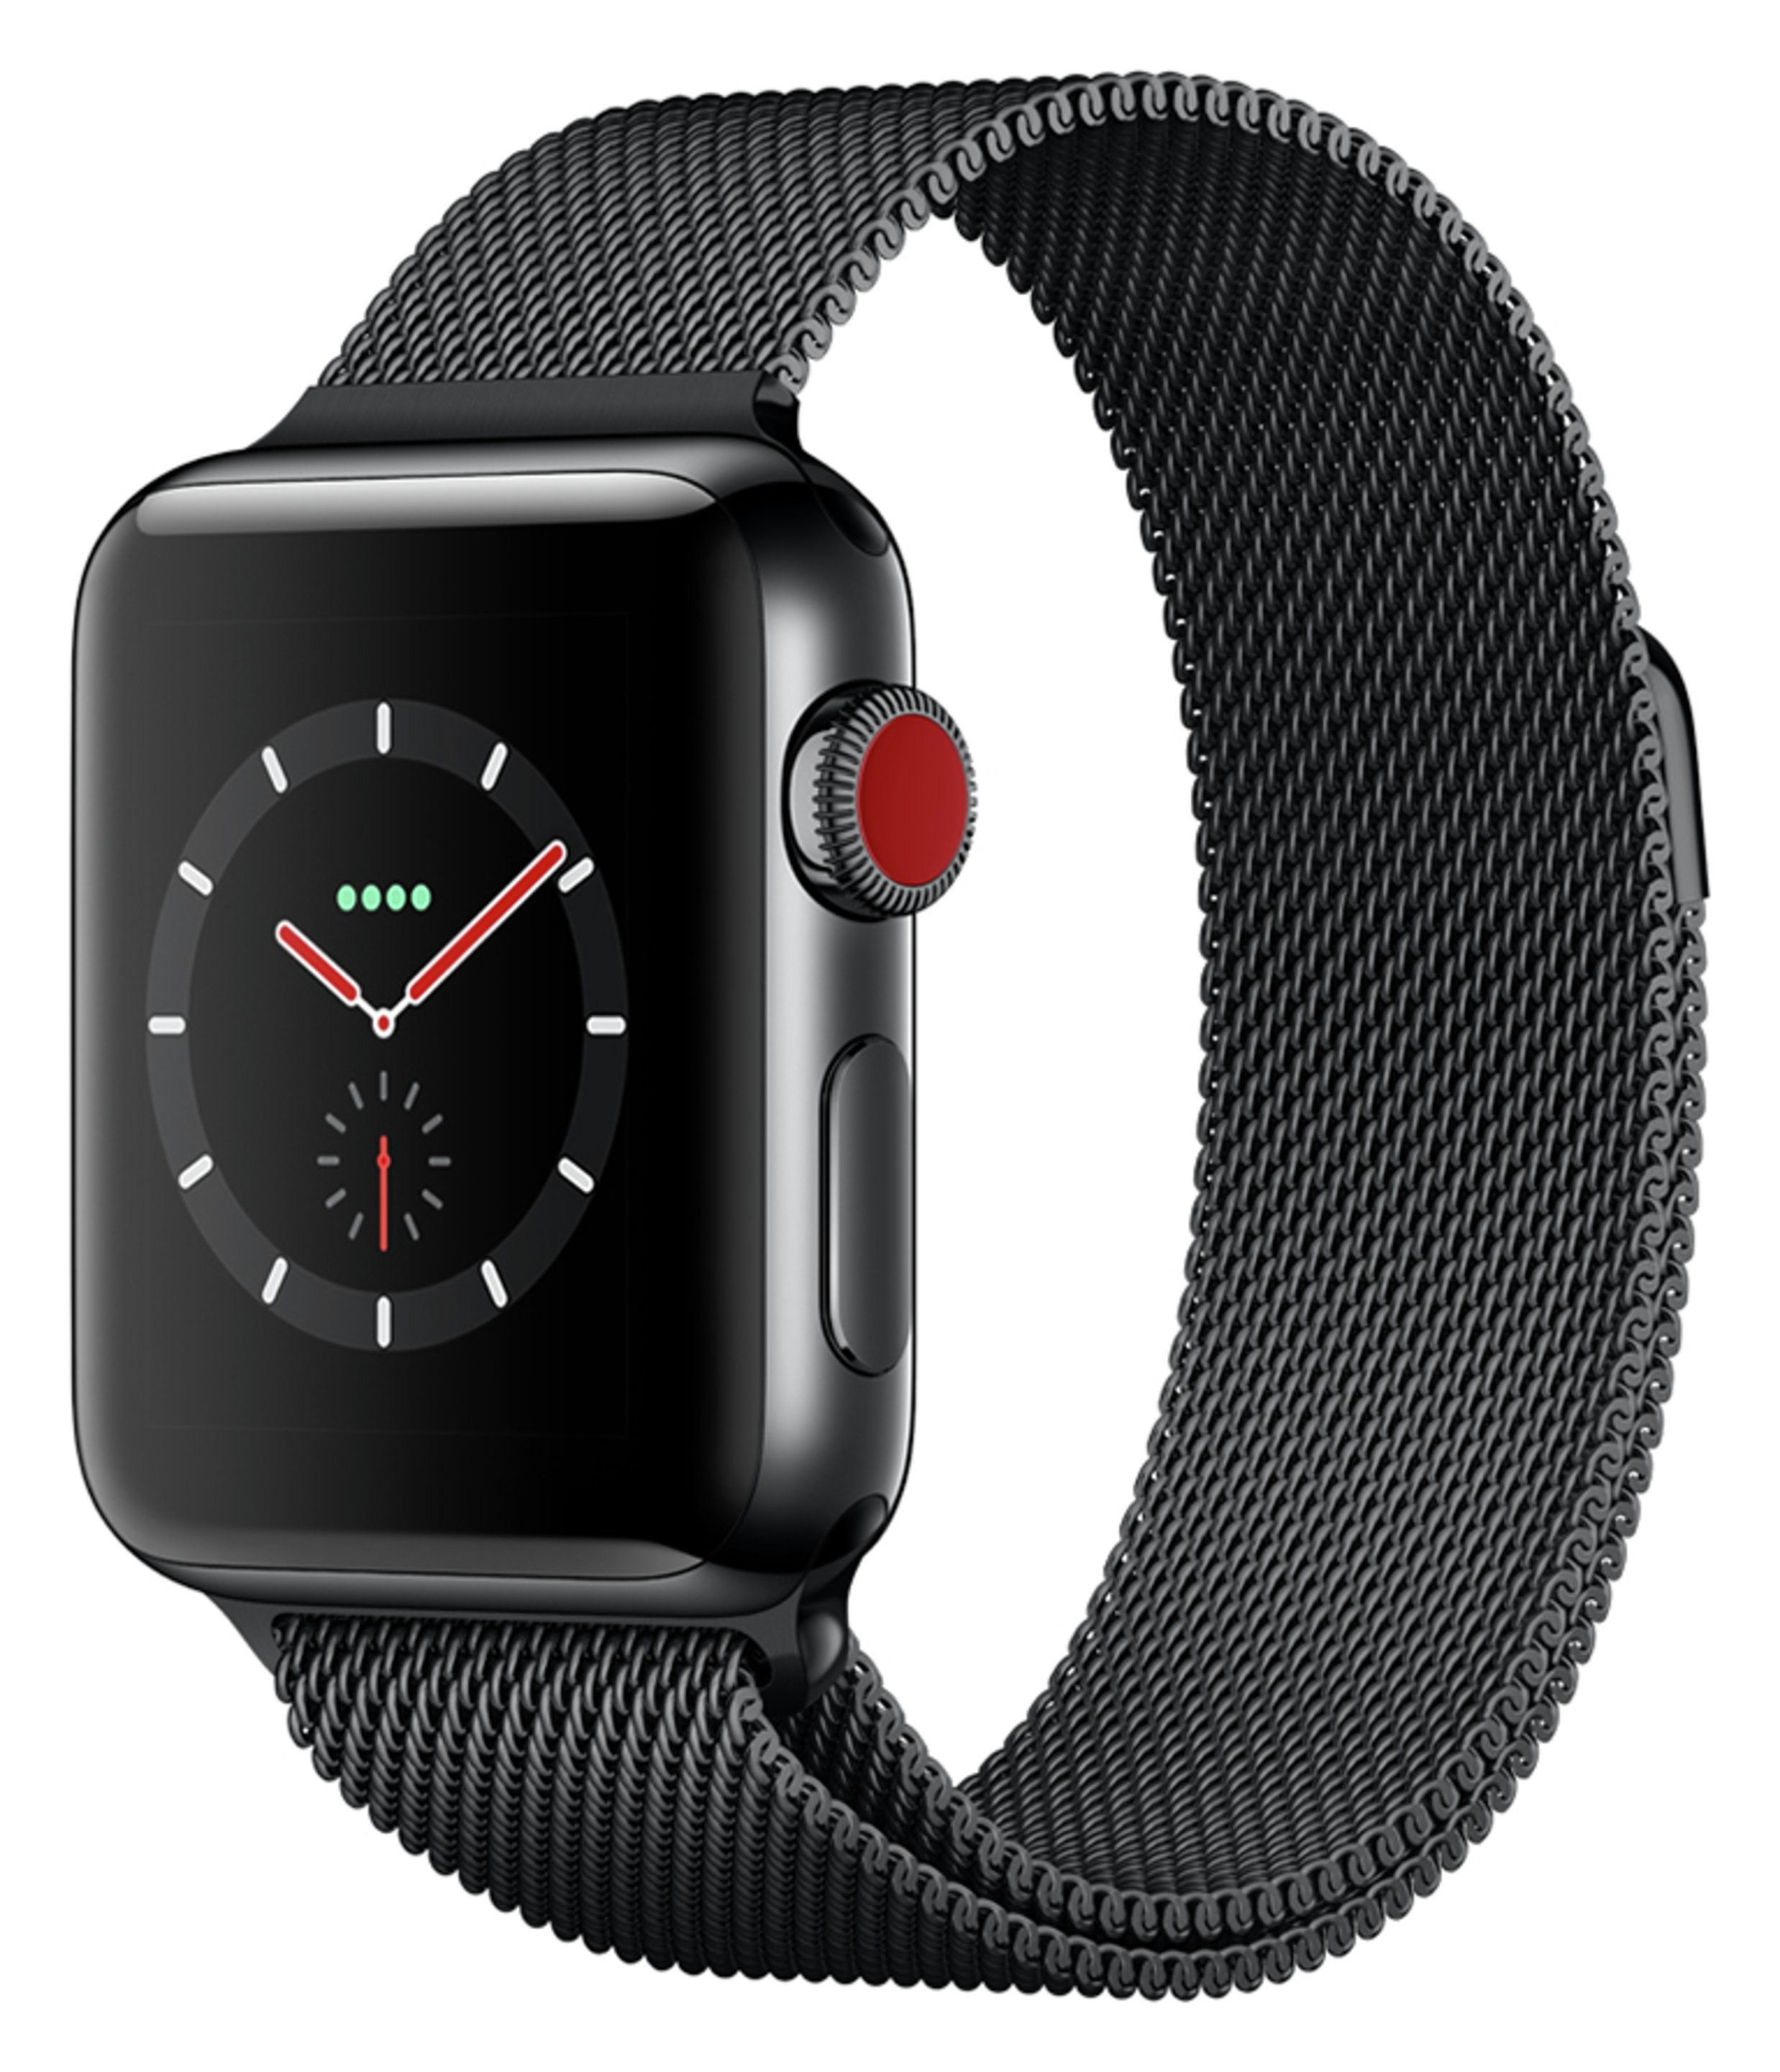 Apple Apple Watch S3 Cellular 42mm - Black SS Case/ Black Mil Loop